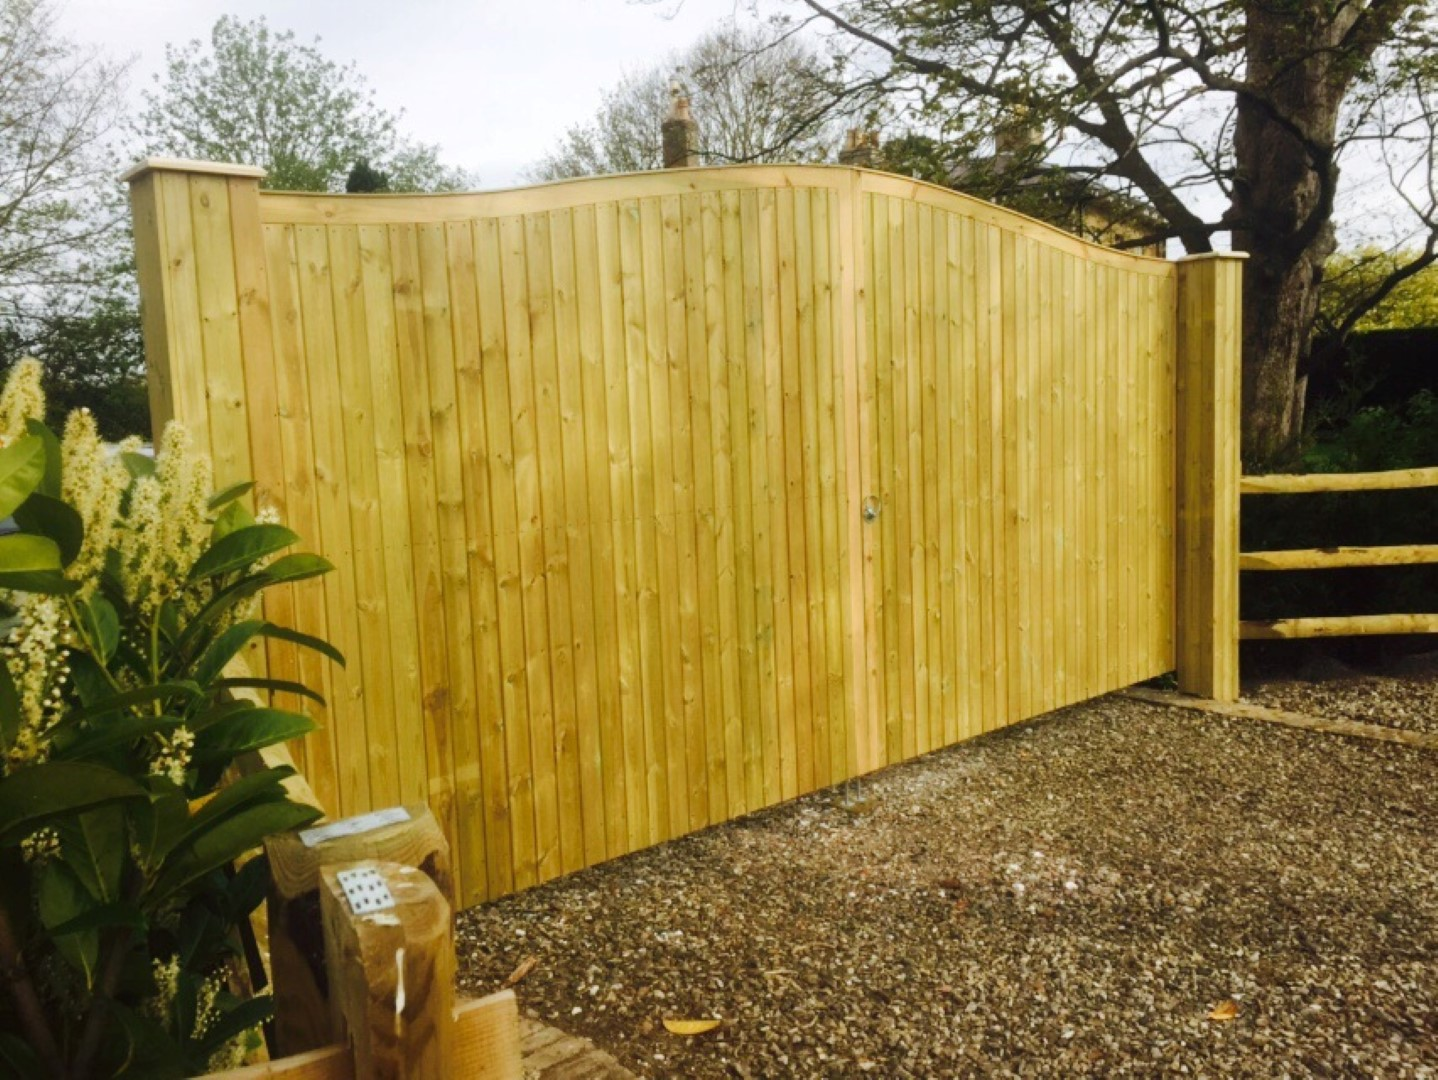 Metal inner framed gates with v-joint cladding to the posts. The gates are our omega top.